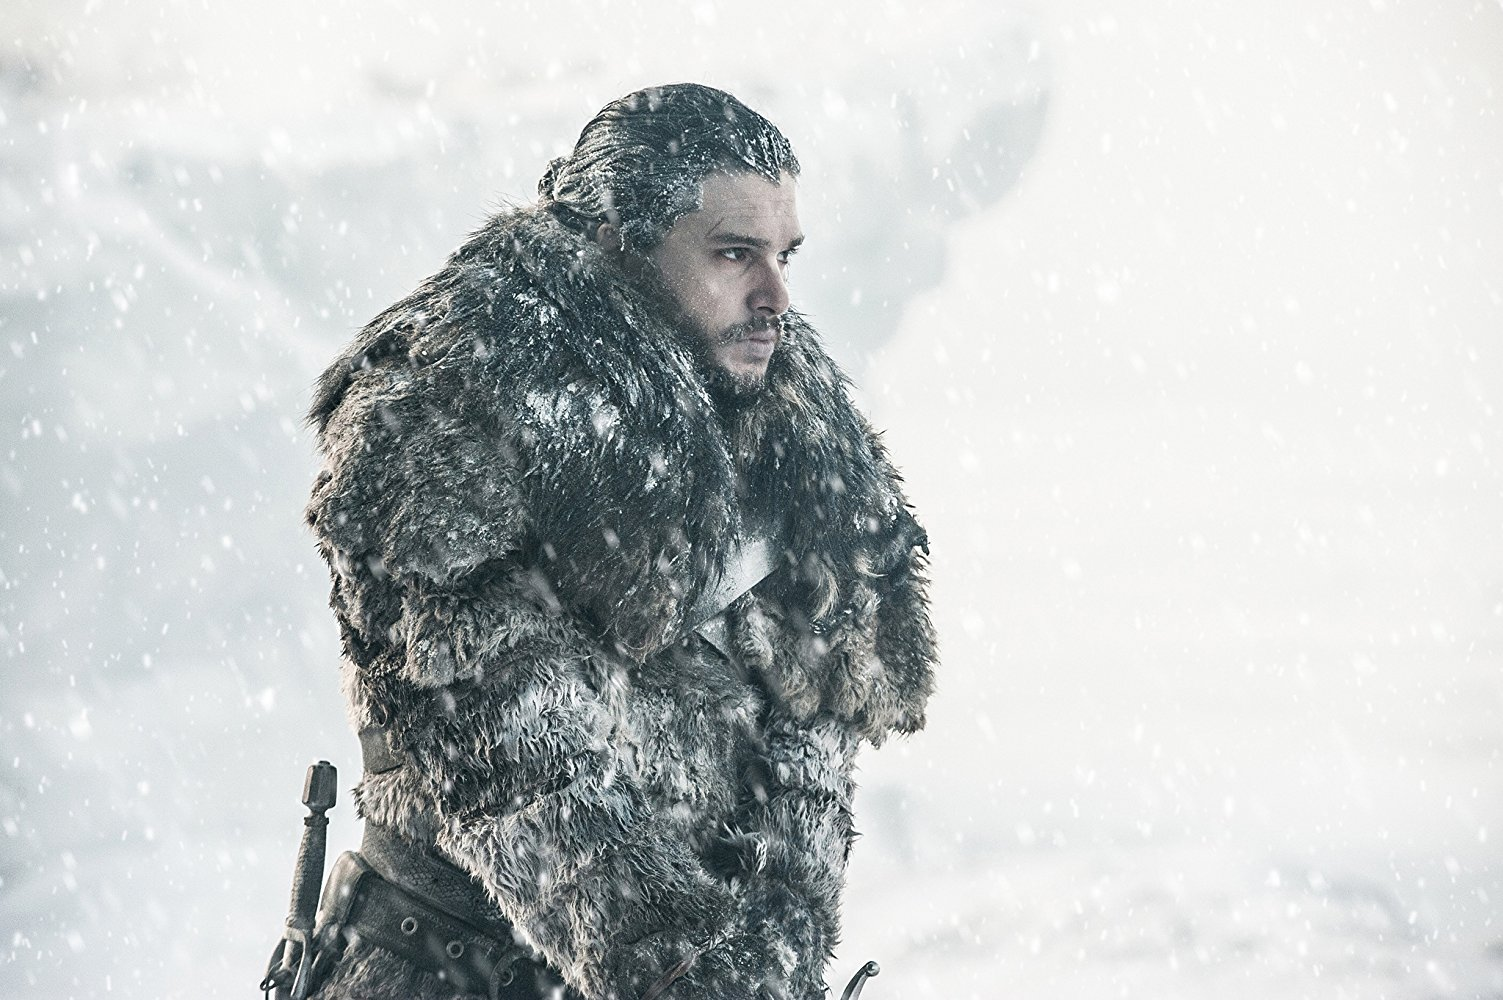 Game of thrones, Kit Harrington, Iceland